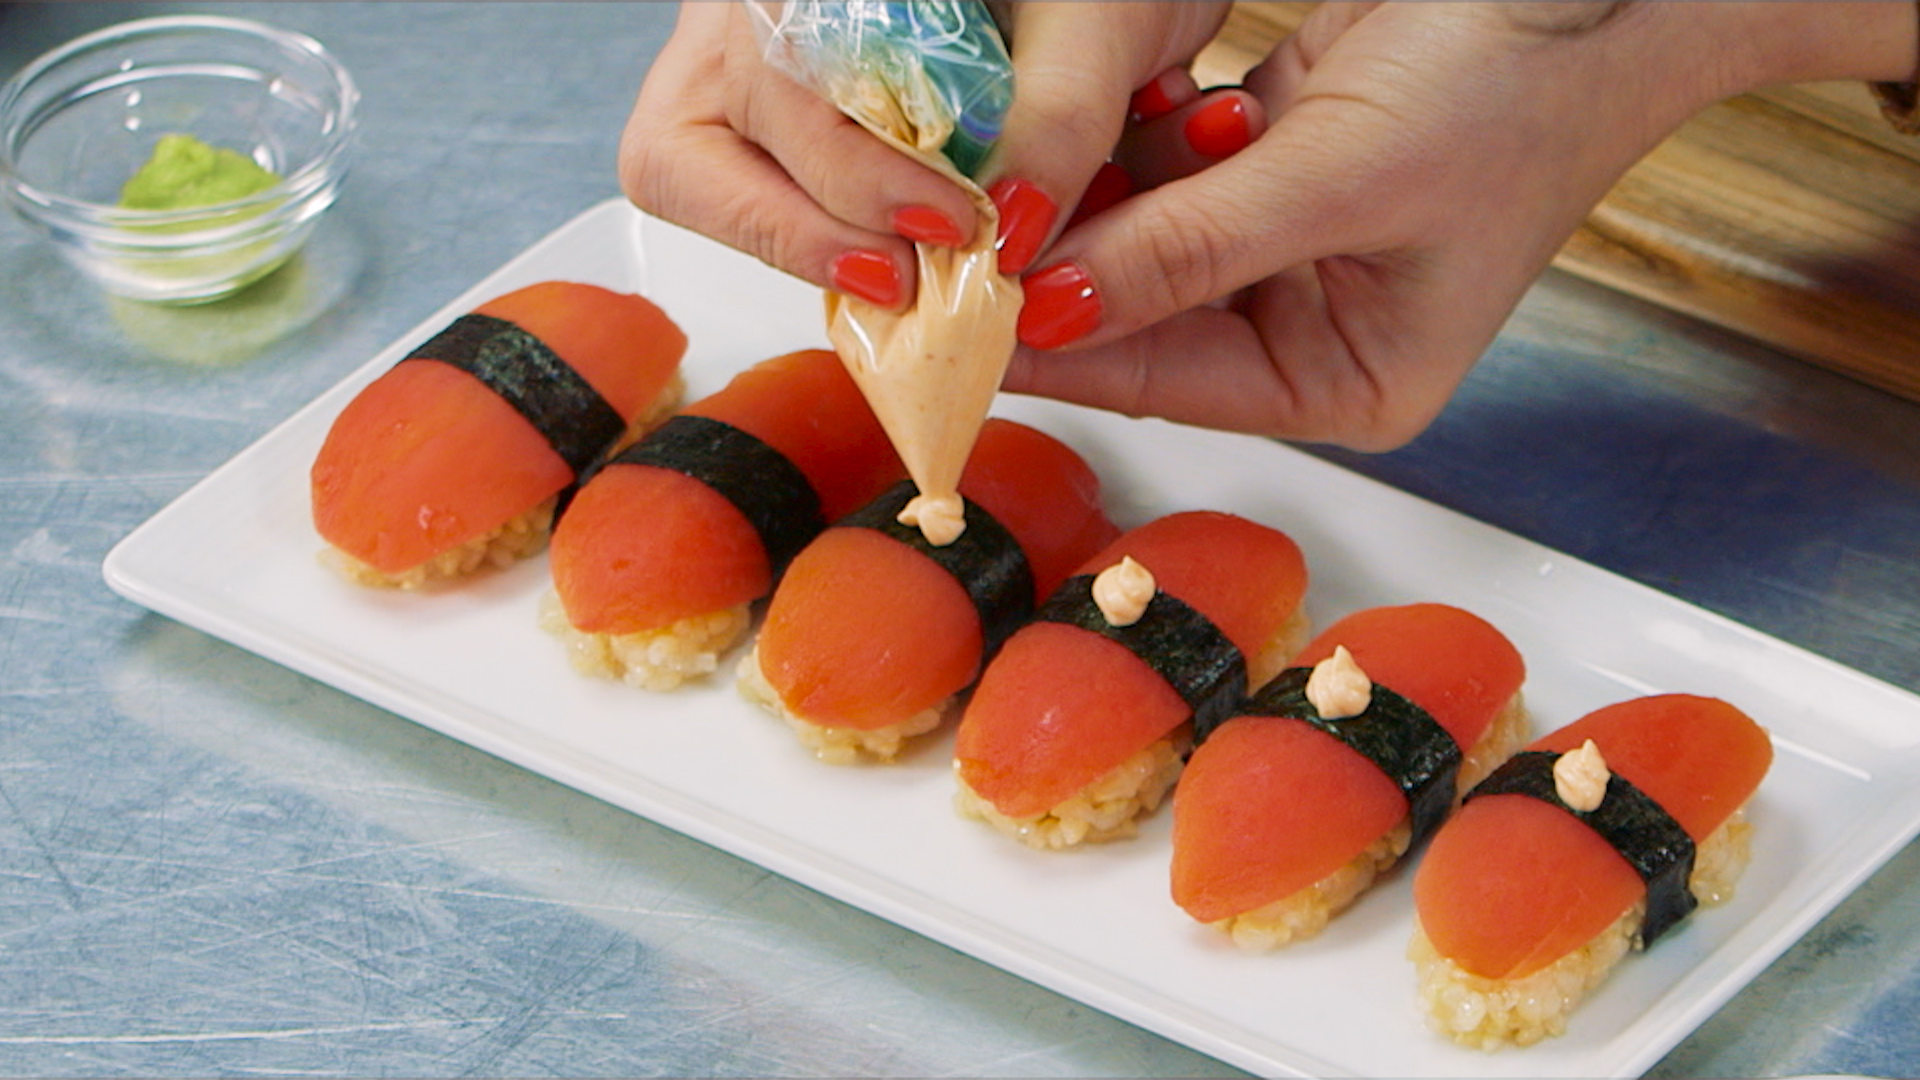 hands piping a Sriracha mayo sauce on top of sushi